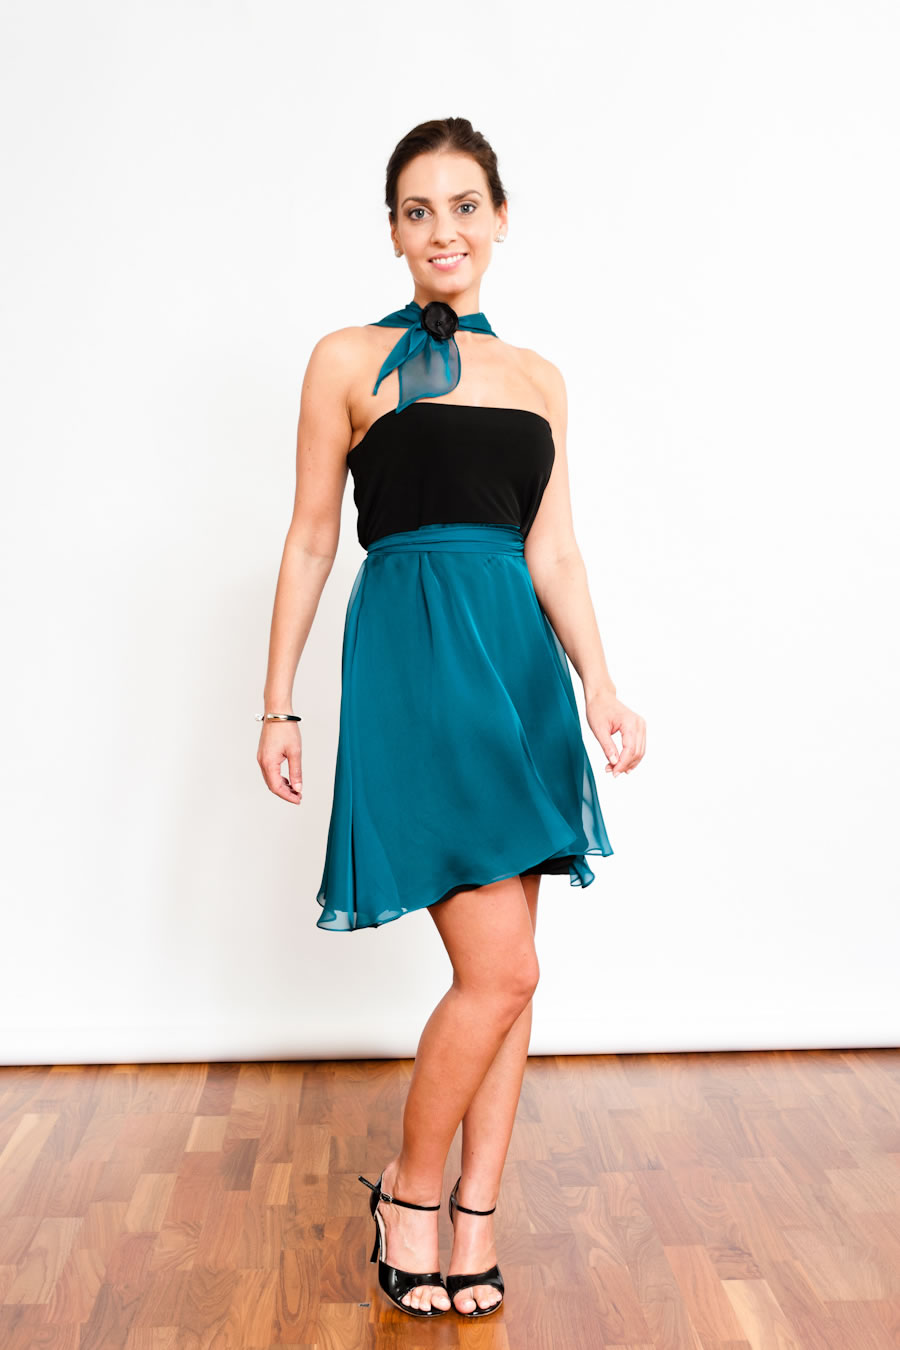 Tango Clothing, Dresses & Fashion made in the UK   Dancy ...